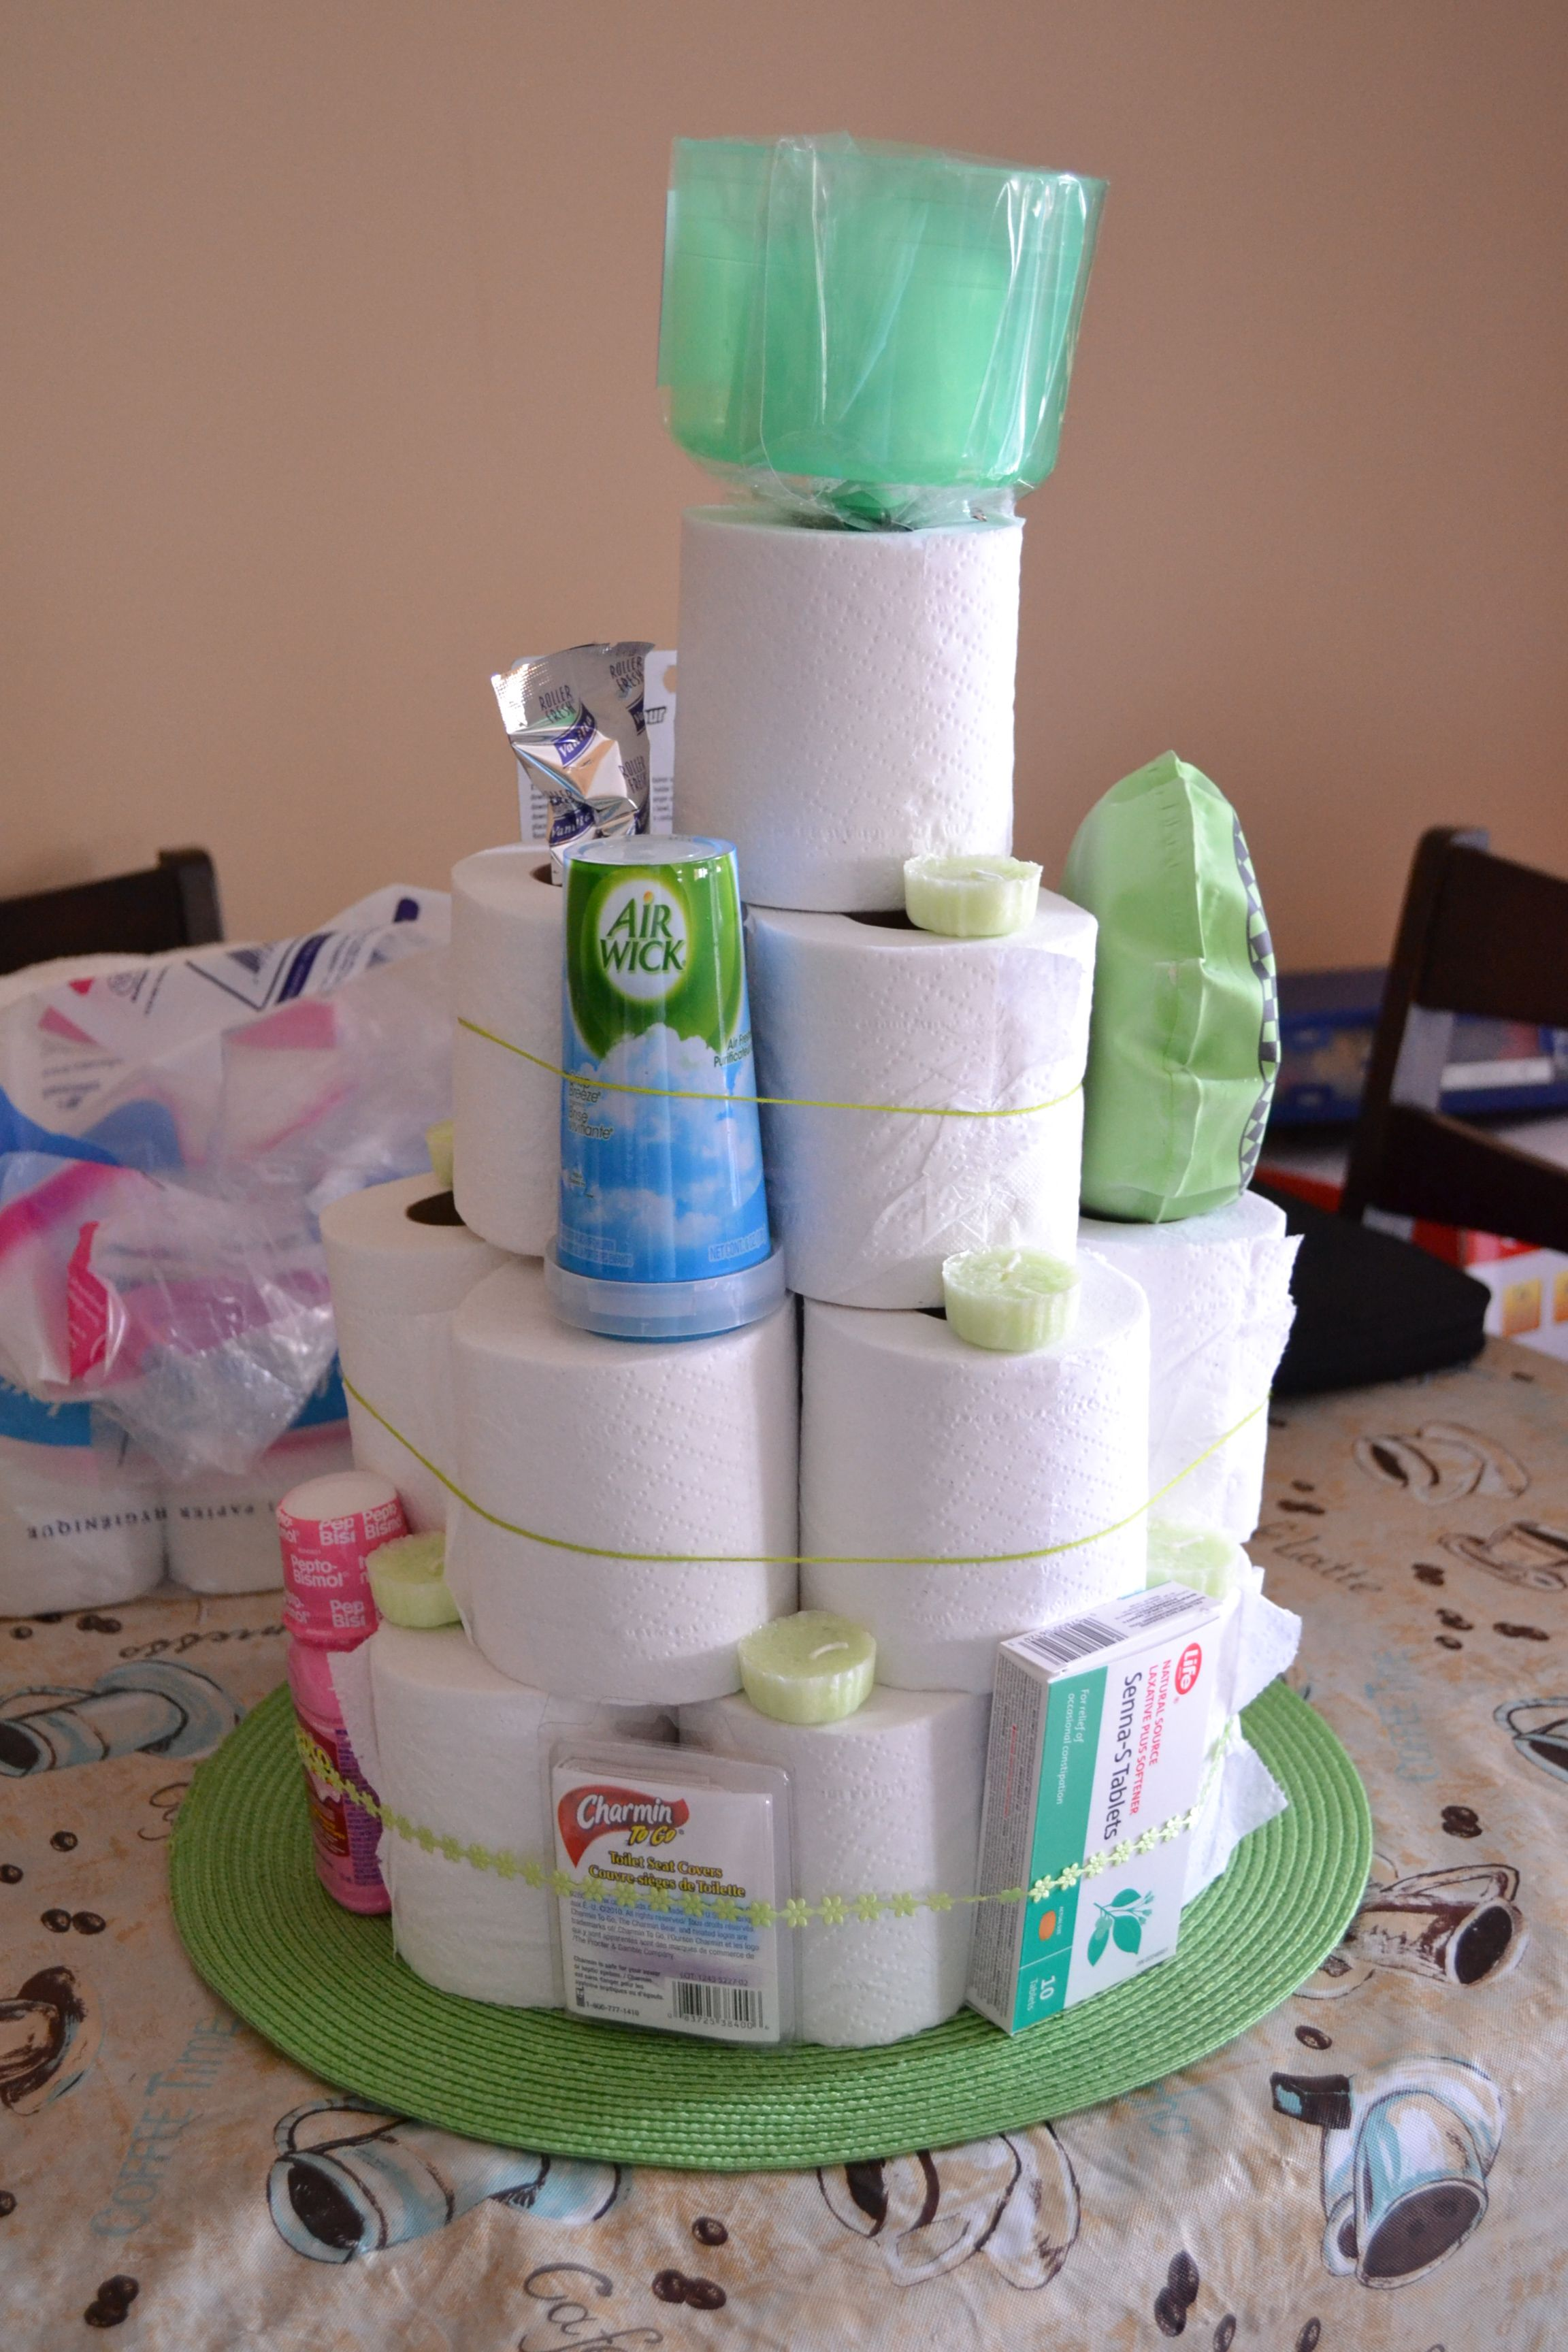 Toilet Paper Cake Made For A Gag Birthday Gift Gag Gifts Christmas Birthday Gag Gifts Cheap Christmas Gifts